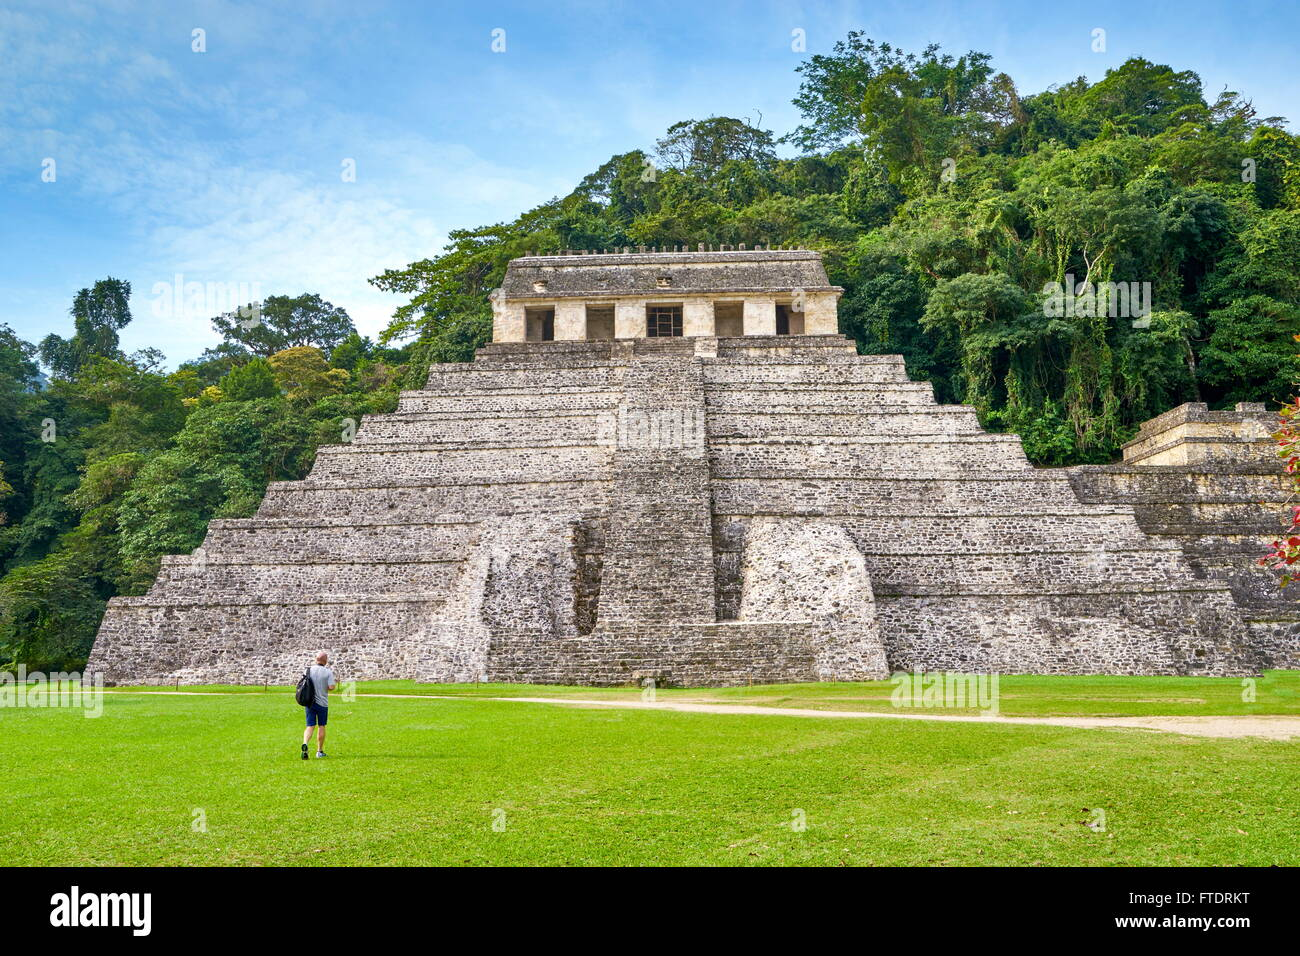 Mexico - Temple of Inscriptions or Templo de Inscripciones, Maya Ruins, Palenque Archaeological Site, Palenque, - Stock Image